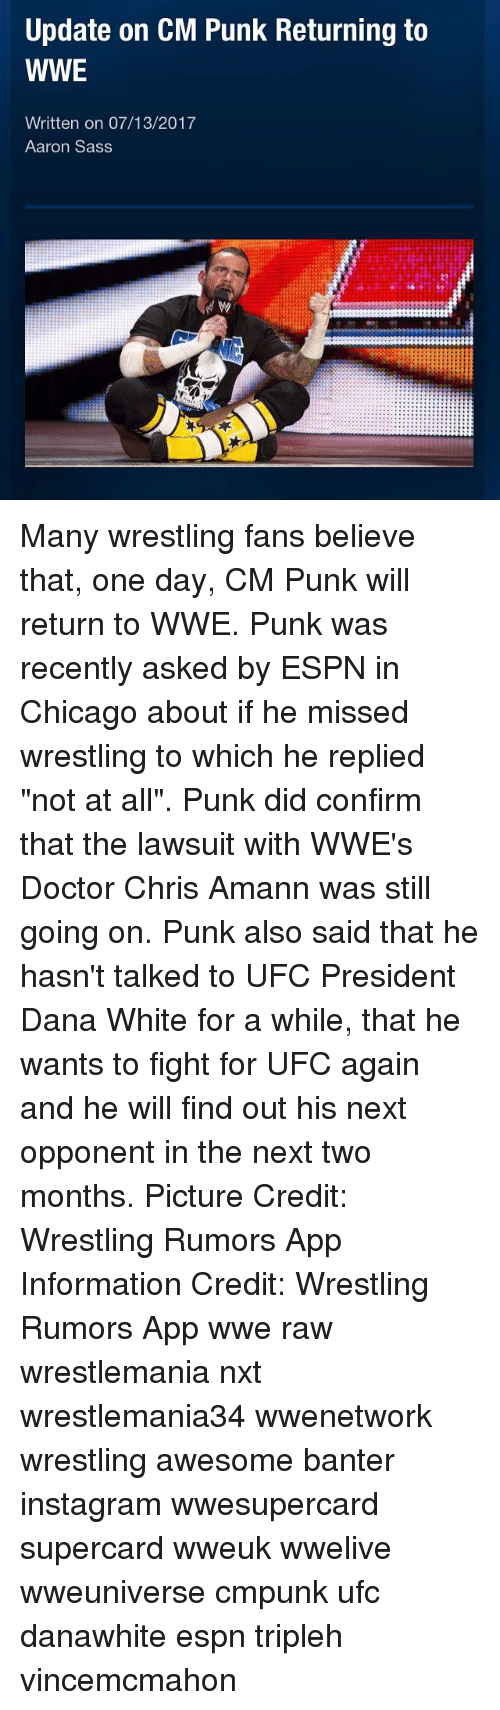 "Chicago, Doctor, and Espn: Update on CM Punk Returning to  WWE  Written on 07/13/2017  Aaron Sass Many wrestling fans believe that, one day, CM Punk will return to WWE. Punk was recently asked by ESPN in Chicago about if he missed wrestling to which he replied ""not at all"". Punk did confirm that the lawsuit with WWE's Doctor Chris Amann was still going on. Punk also said that he hasn't talked to UFC President Dana White for a while, that he wants to fight for UFC again and he will find out his next opponent in the next two months. Picture Credit: Wrestling Rumors App Information Credit: Wrestling Rumors App wwe raw wrestlemania nxt wrestlemania34 wwenetwork wrestling awesome banter instagram wwesupercard supercard wweuk wwelive wweuniverse cmpunk ufc danawhite espn tripleh vincemcmahon"